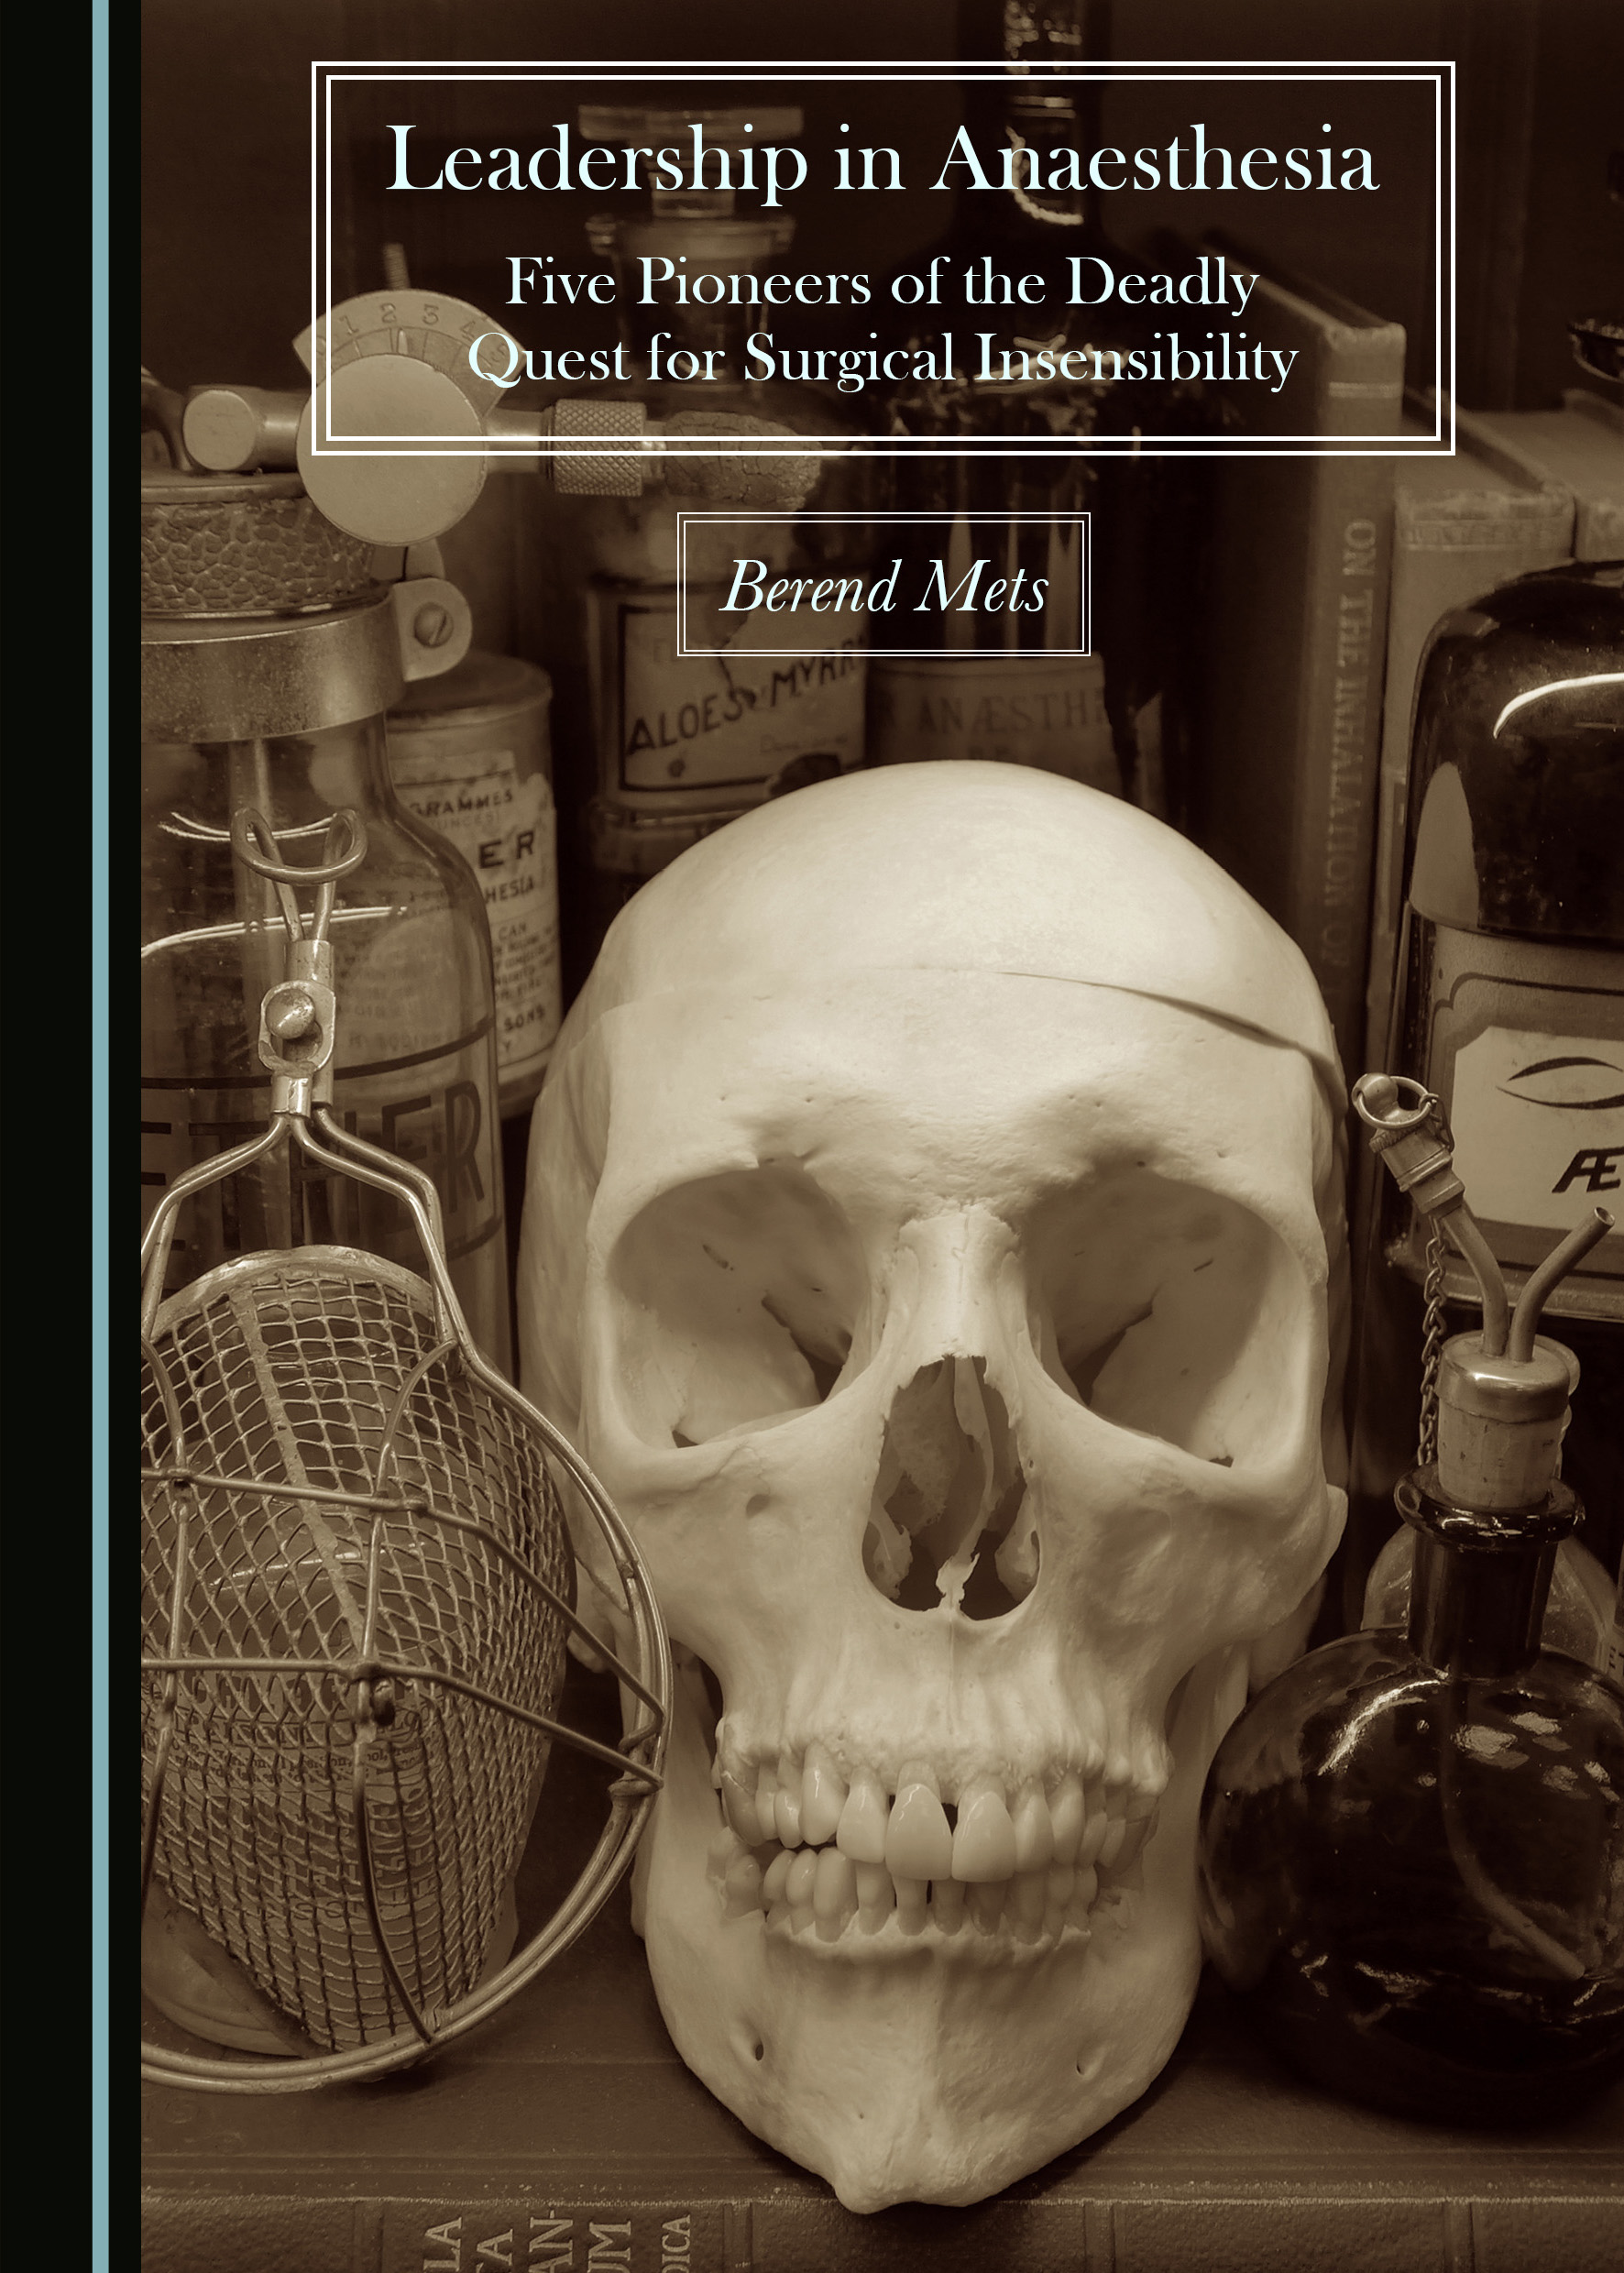 Leadership in Anaesthesia: Five Pioneers of the Deadly Quest for Surgical Insensibility